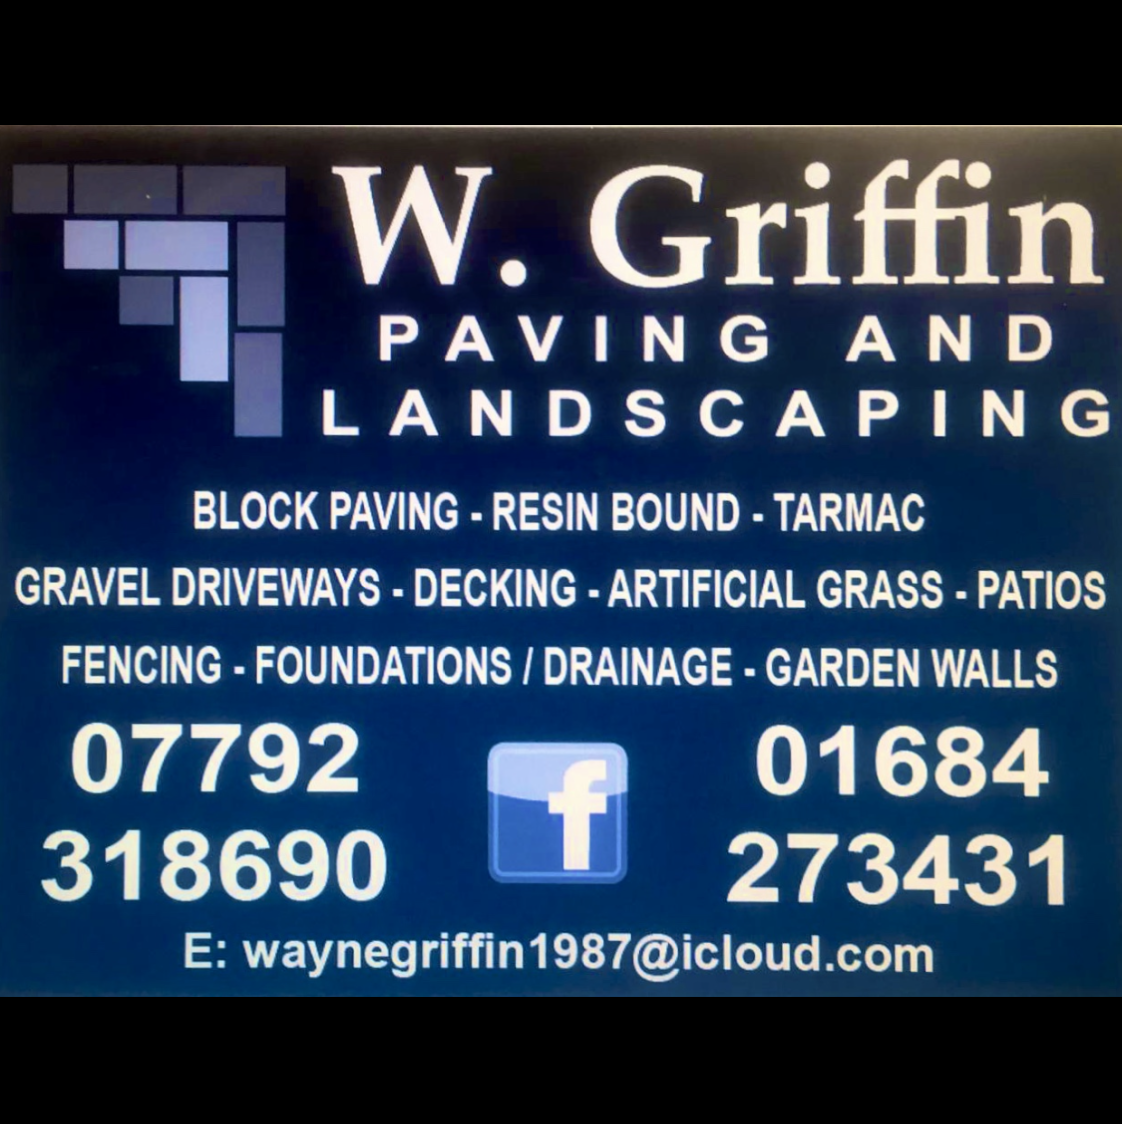 W. Griffin paving & landscaping